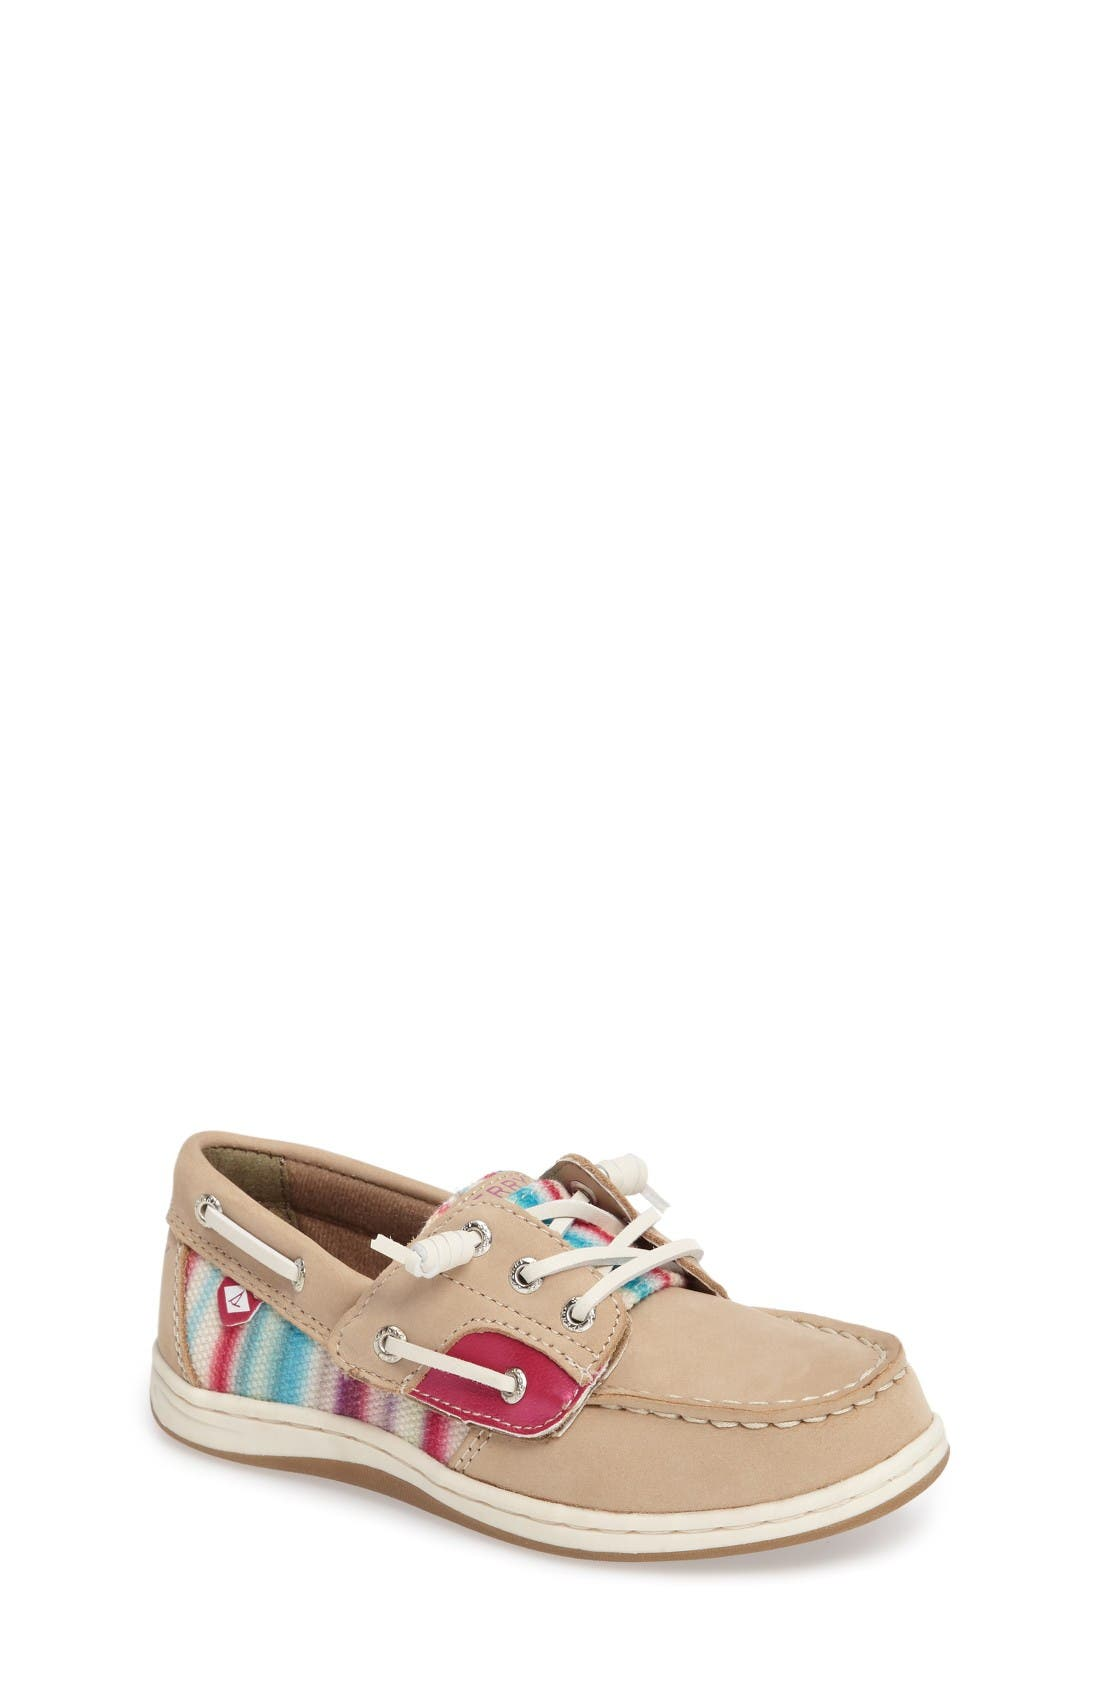 Sperry Kids 'Songfish Jr' Boat Shoe (Walker & Toddler)